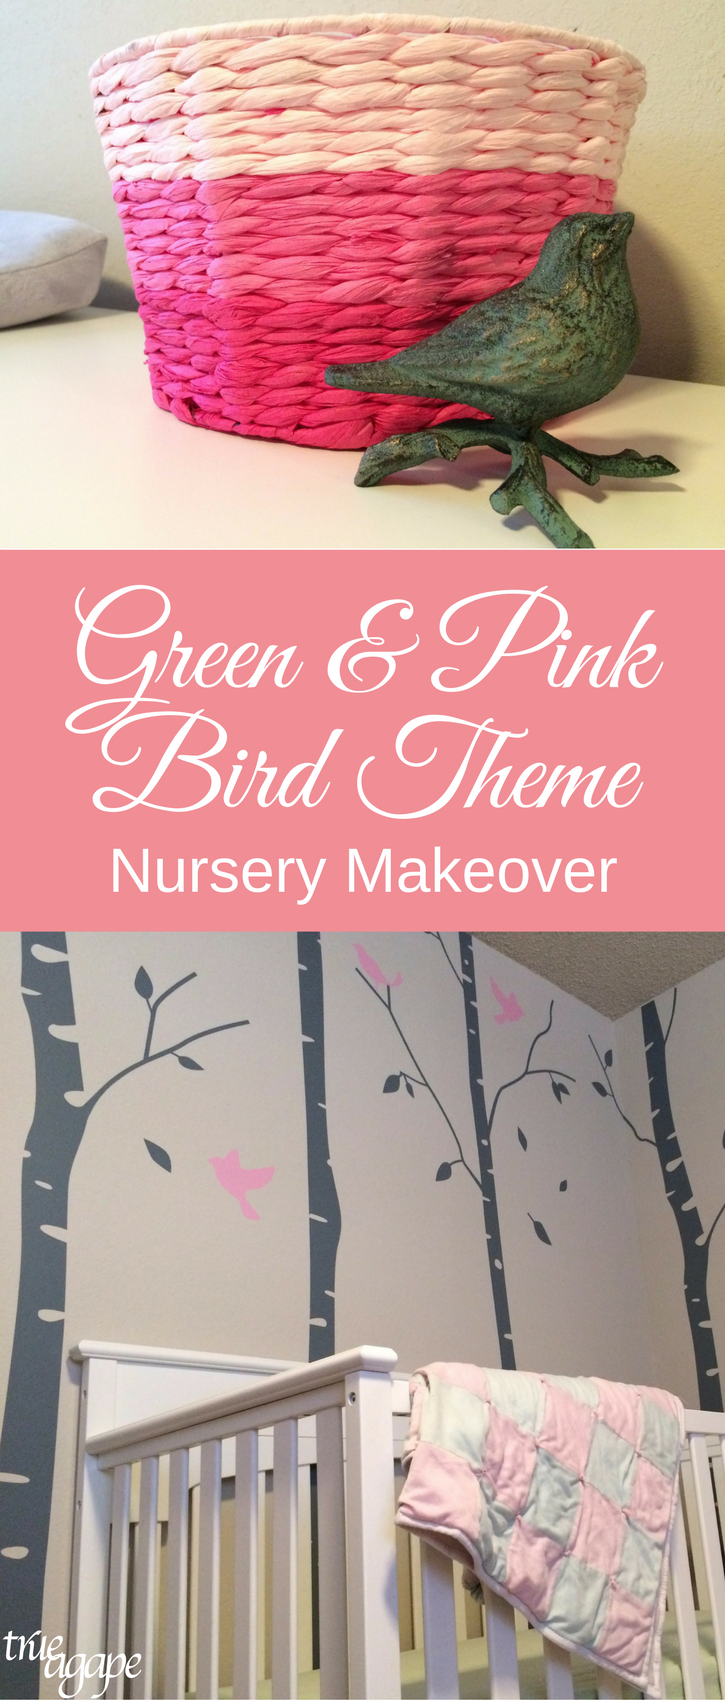 green-and-pink-bird-nursery-makeover-image